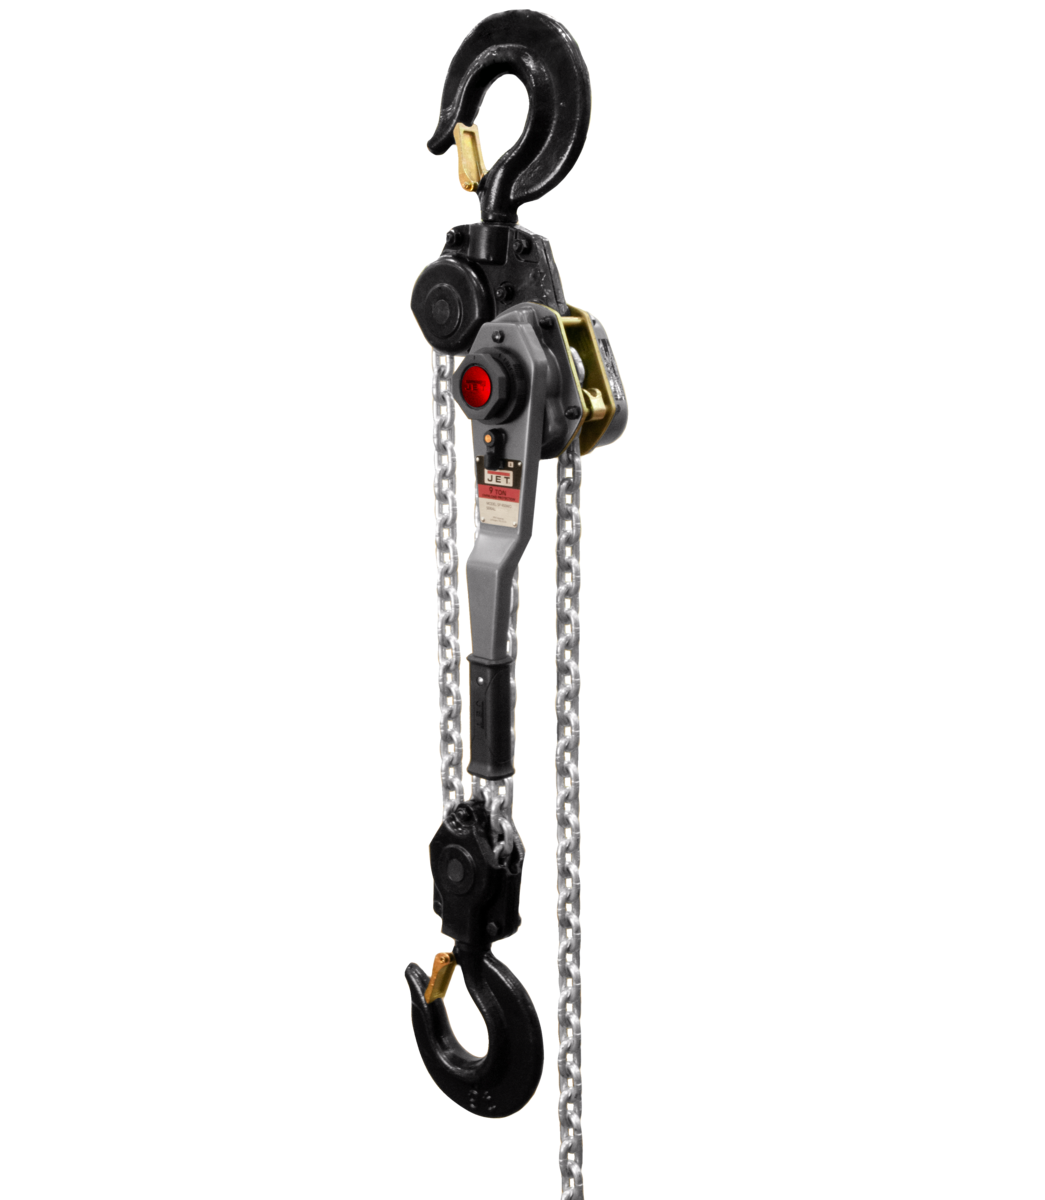 JLH-900WO-10  9 Ton Lever Hoist, 10' Lift with Overload Protection